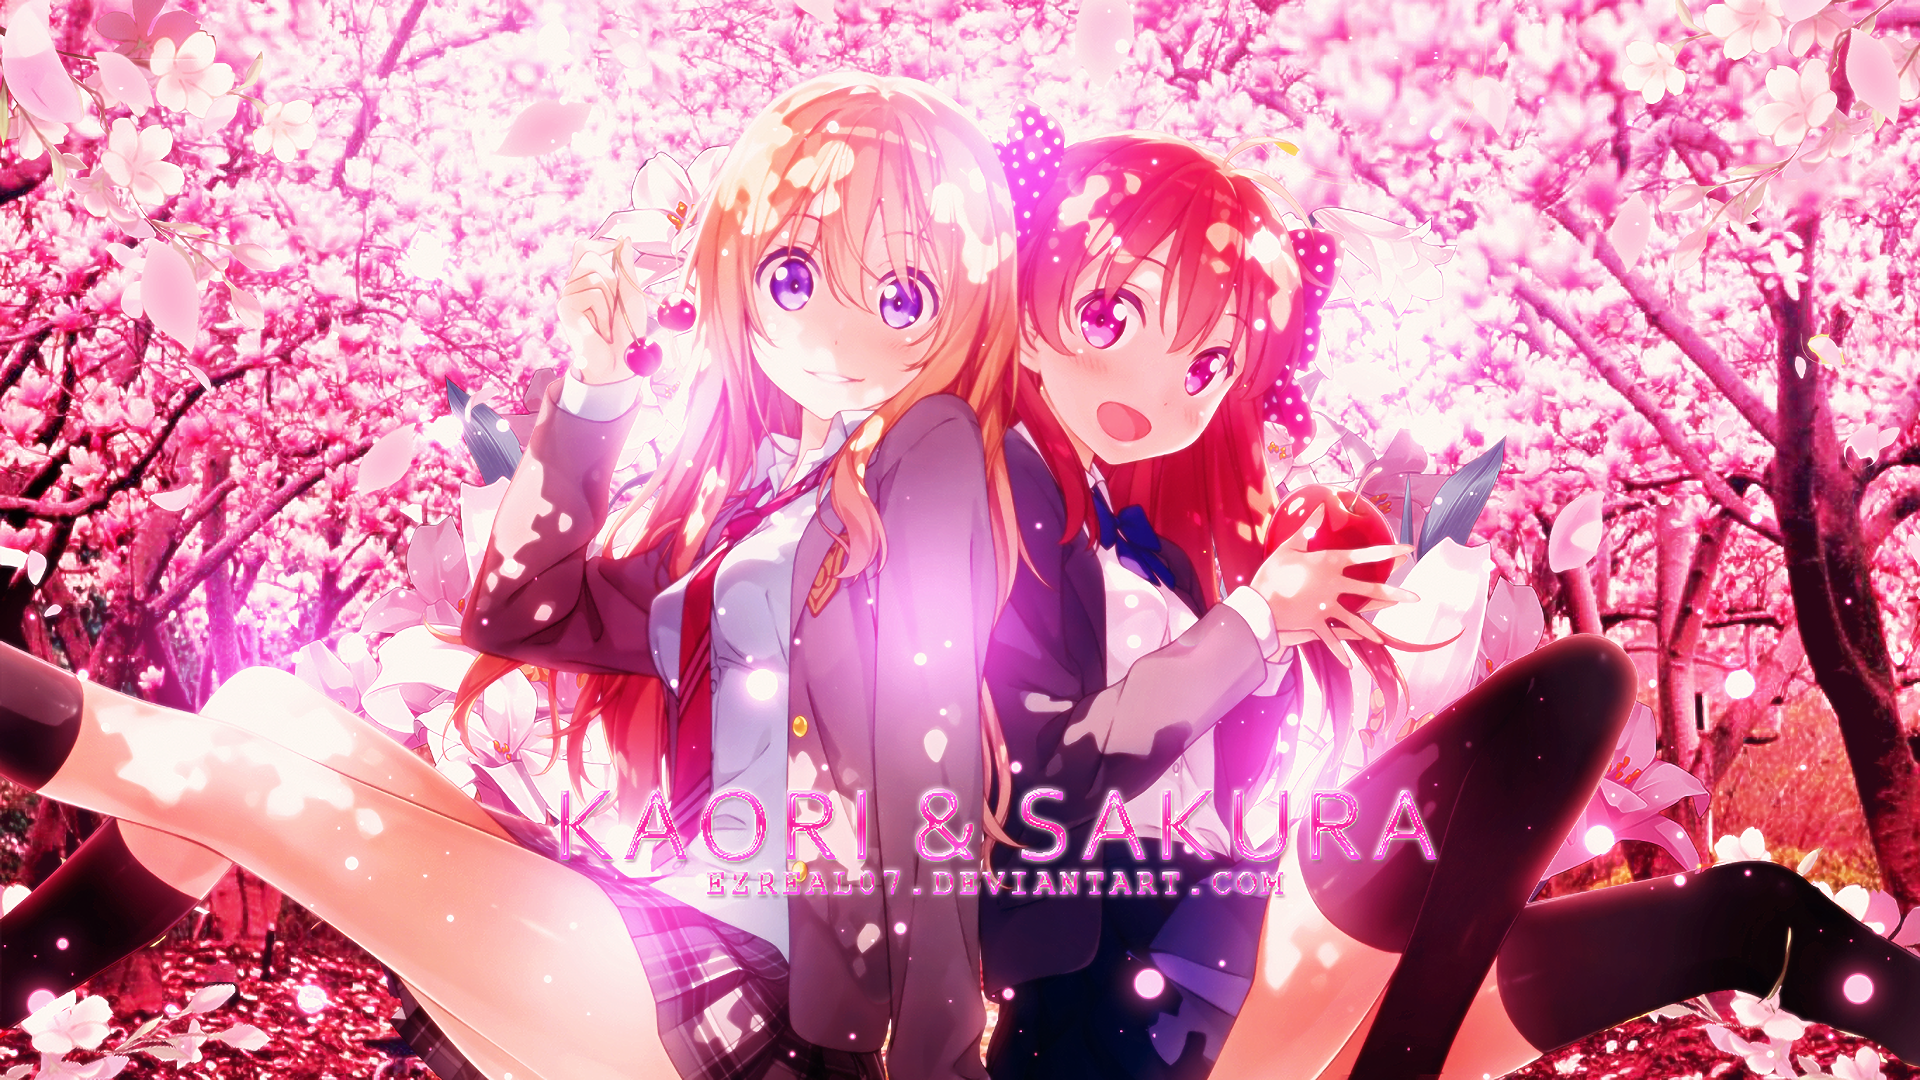 1920x1080-Kaori-x-Sakura-Crossover-Please-remove-text-Need-iPhone-S-Plus-Backgr-wallpaper-wp3601630